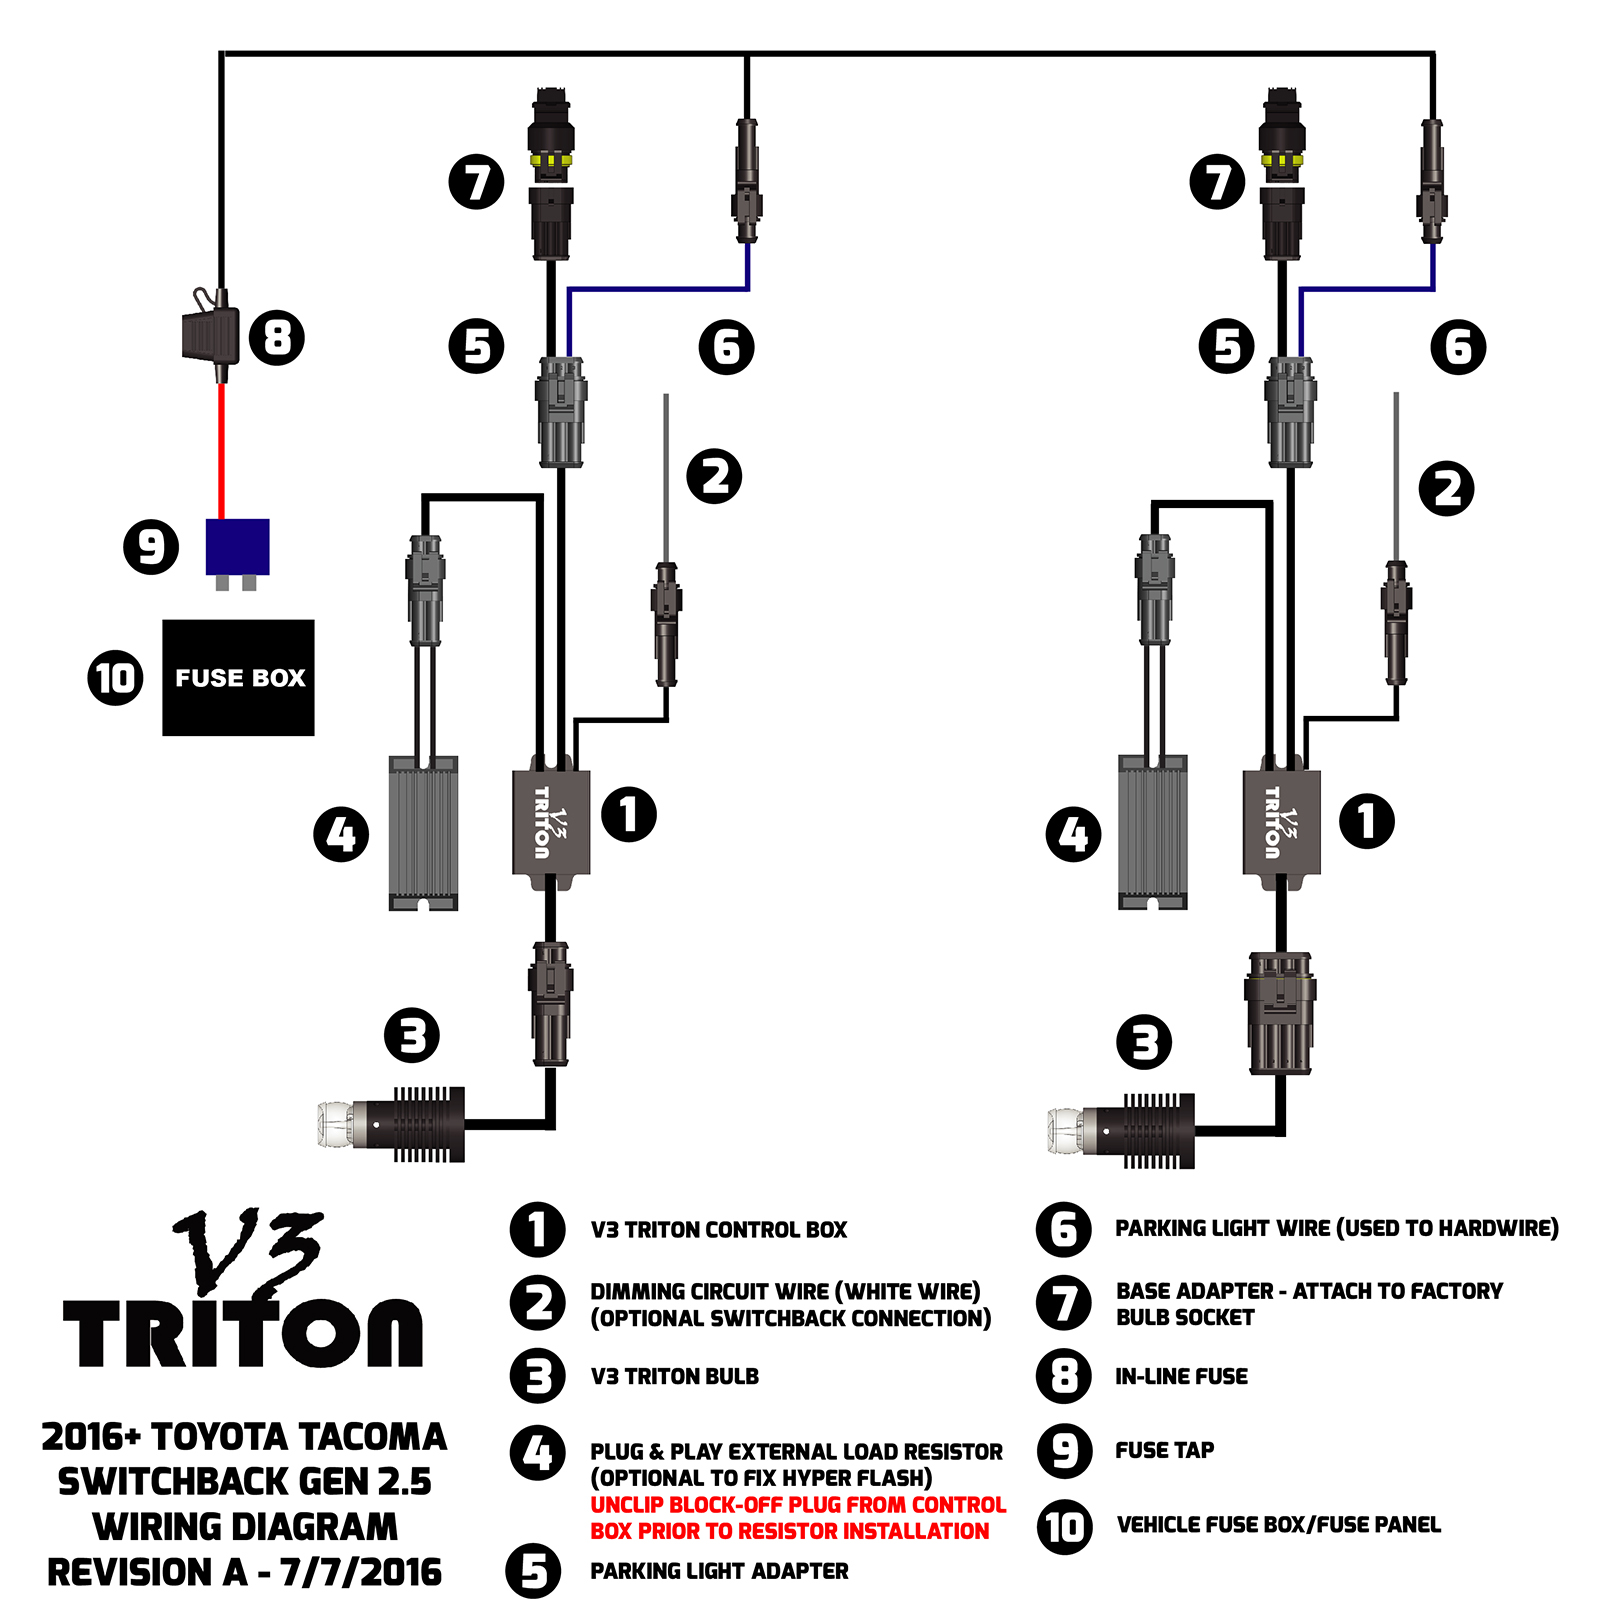 V3_Gen_2.5_A_Tacoma wiring diagrams 2016 toyota tacoma wiring diagram at bayanpartner.co